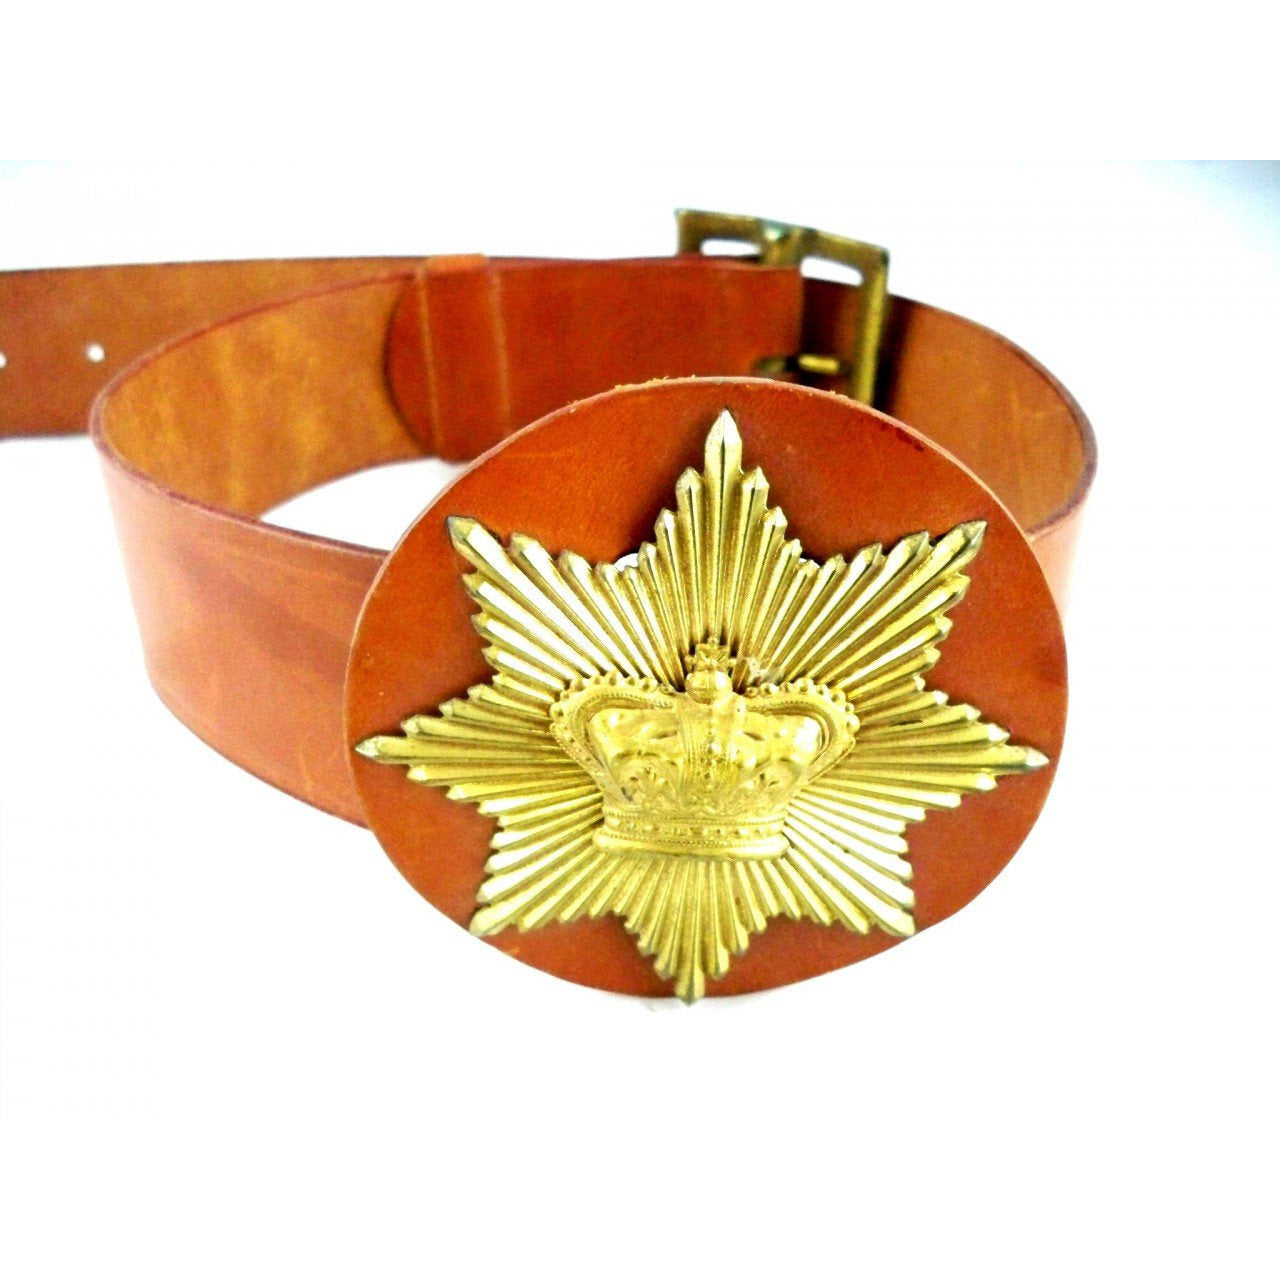 Vintage Ladies Leather Belt 1940s Size 26 Great Crown Emblem - The Best Vintage Clothing  - 1